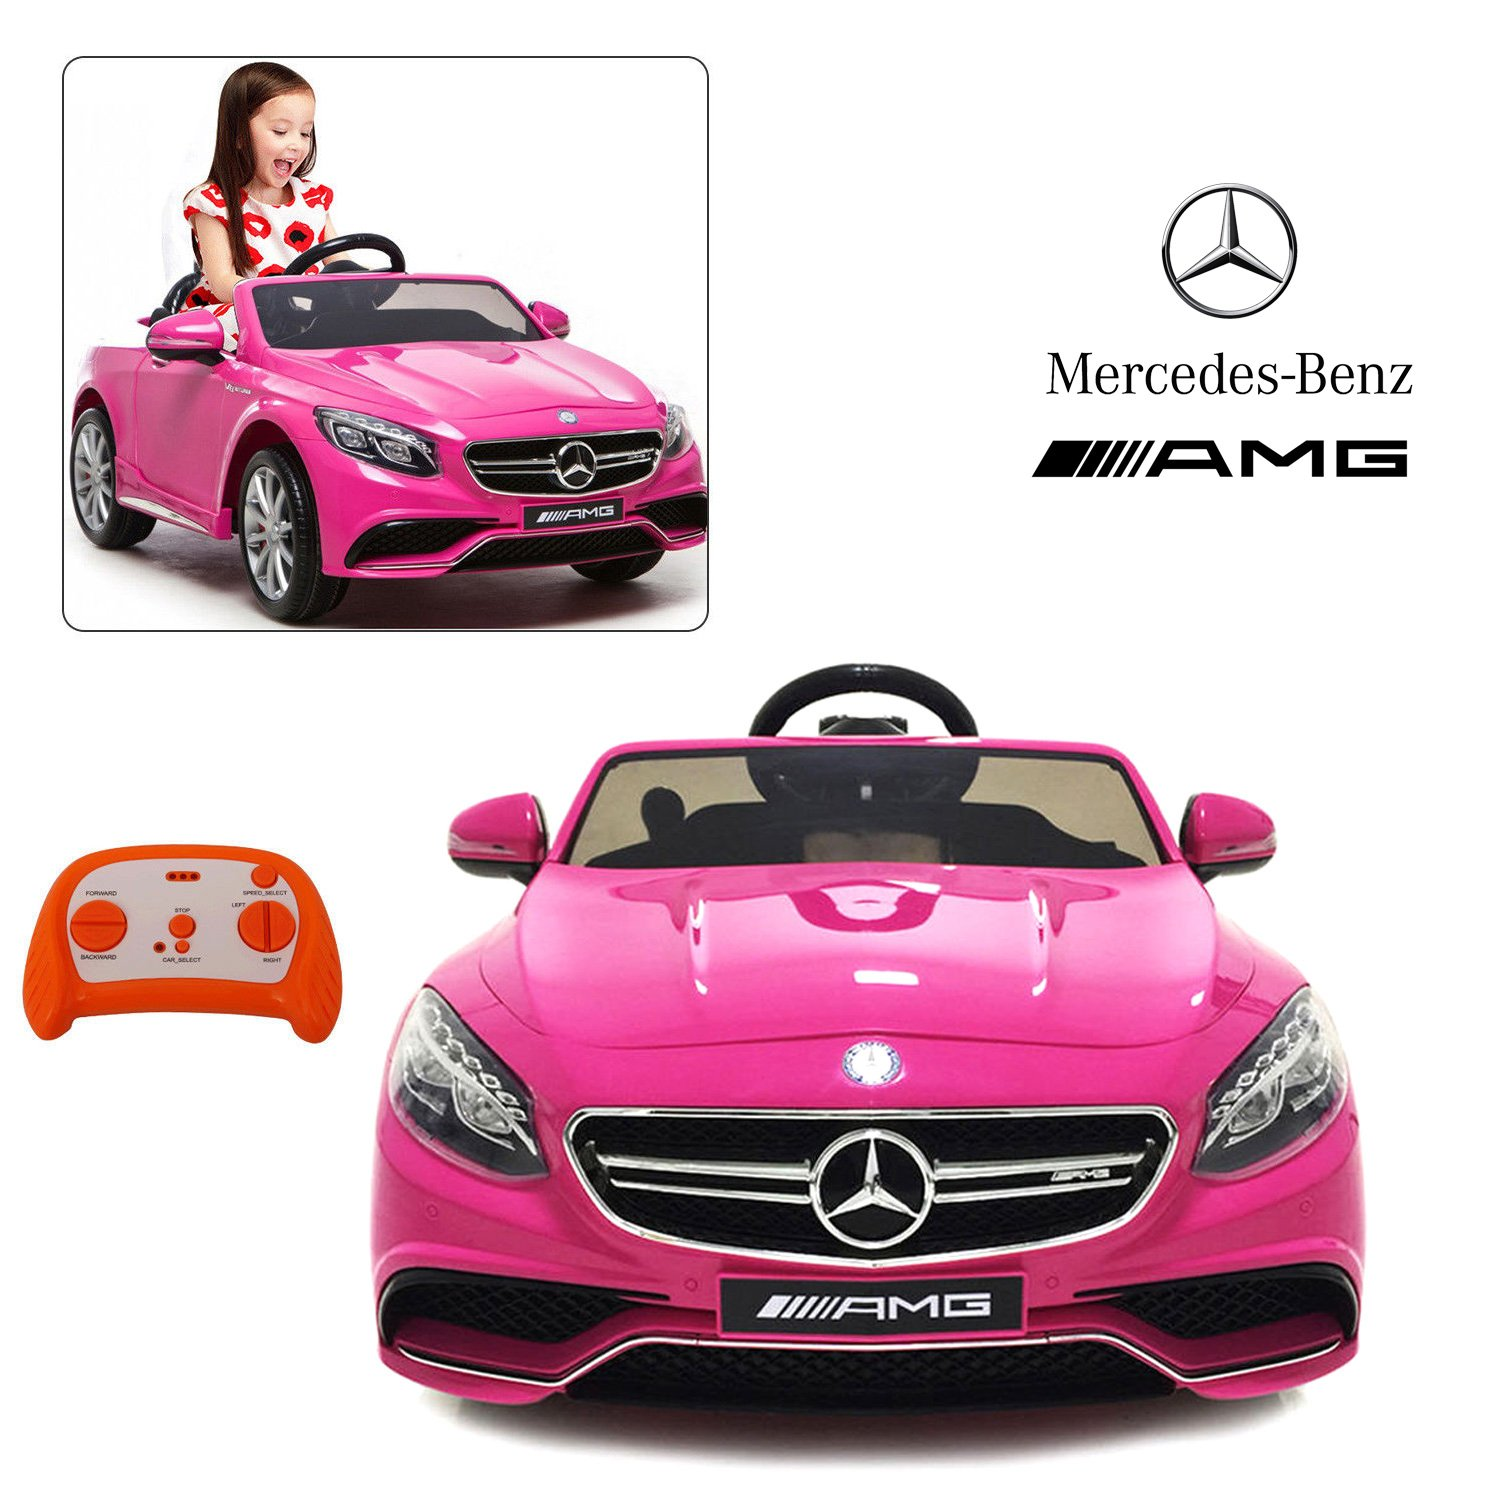 Amazon ficial Licensed Mercedes Benz Ride Car With Remote